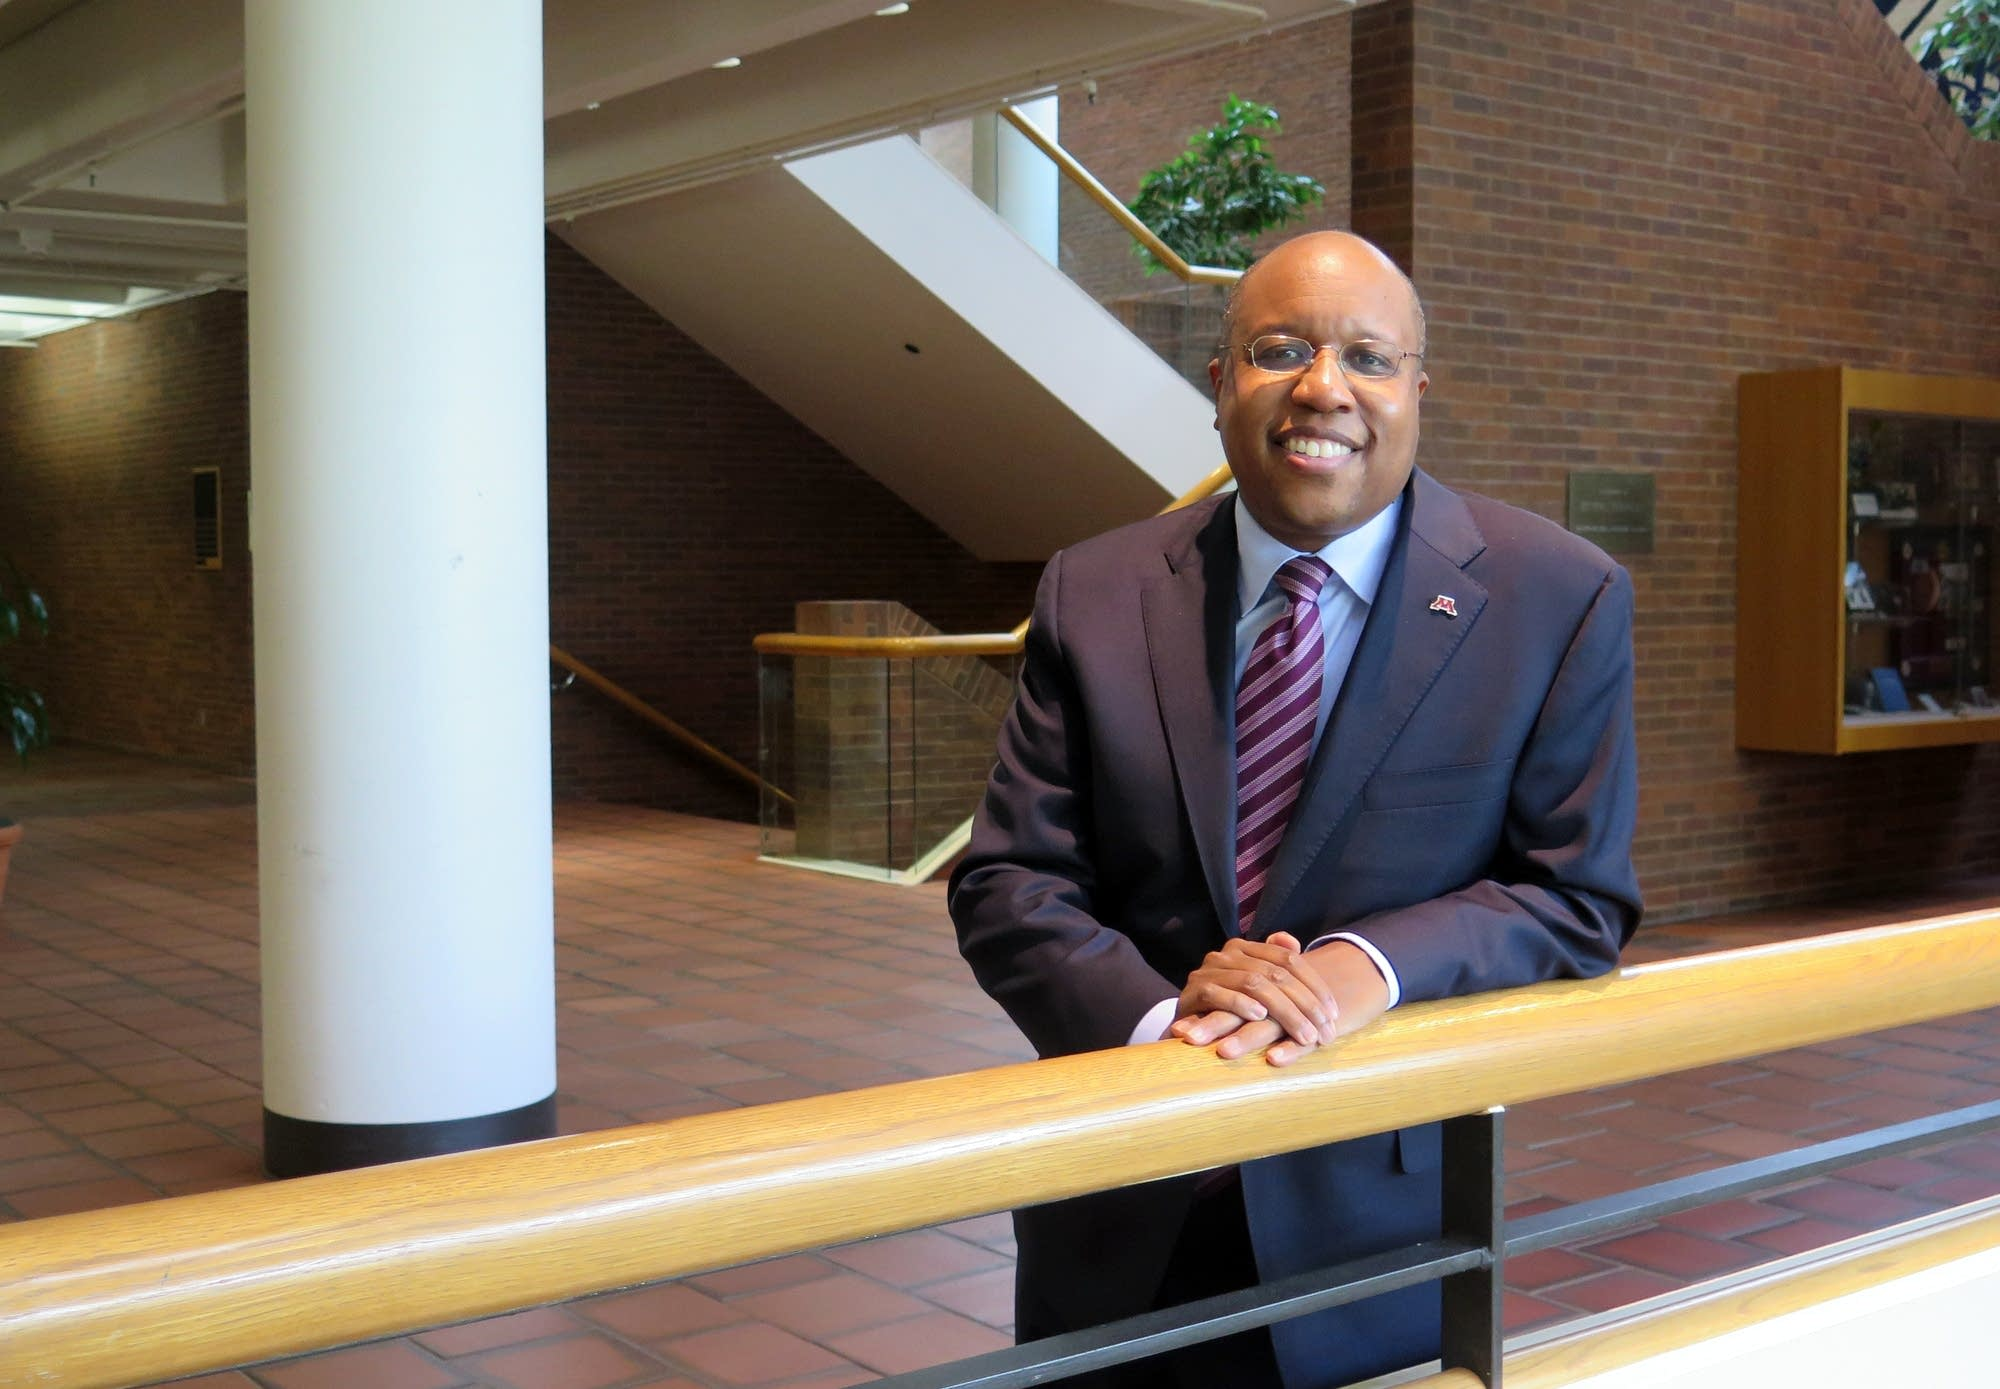 University of Minnesota Law School Dean Garry Jenkins